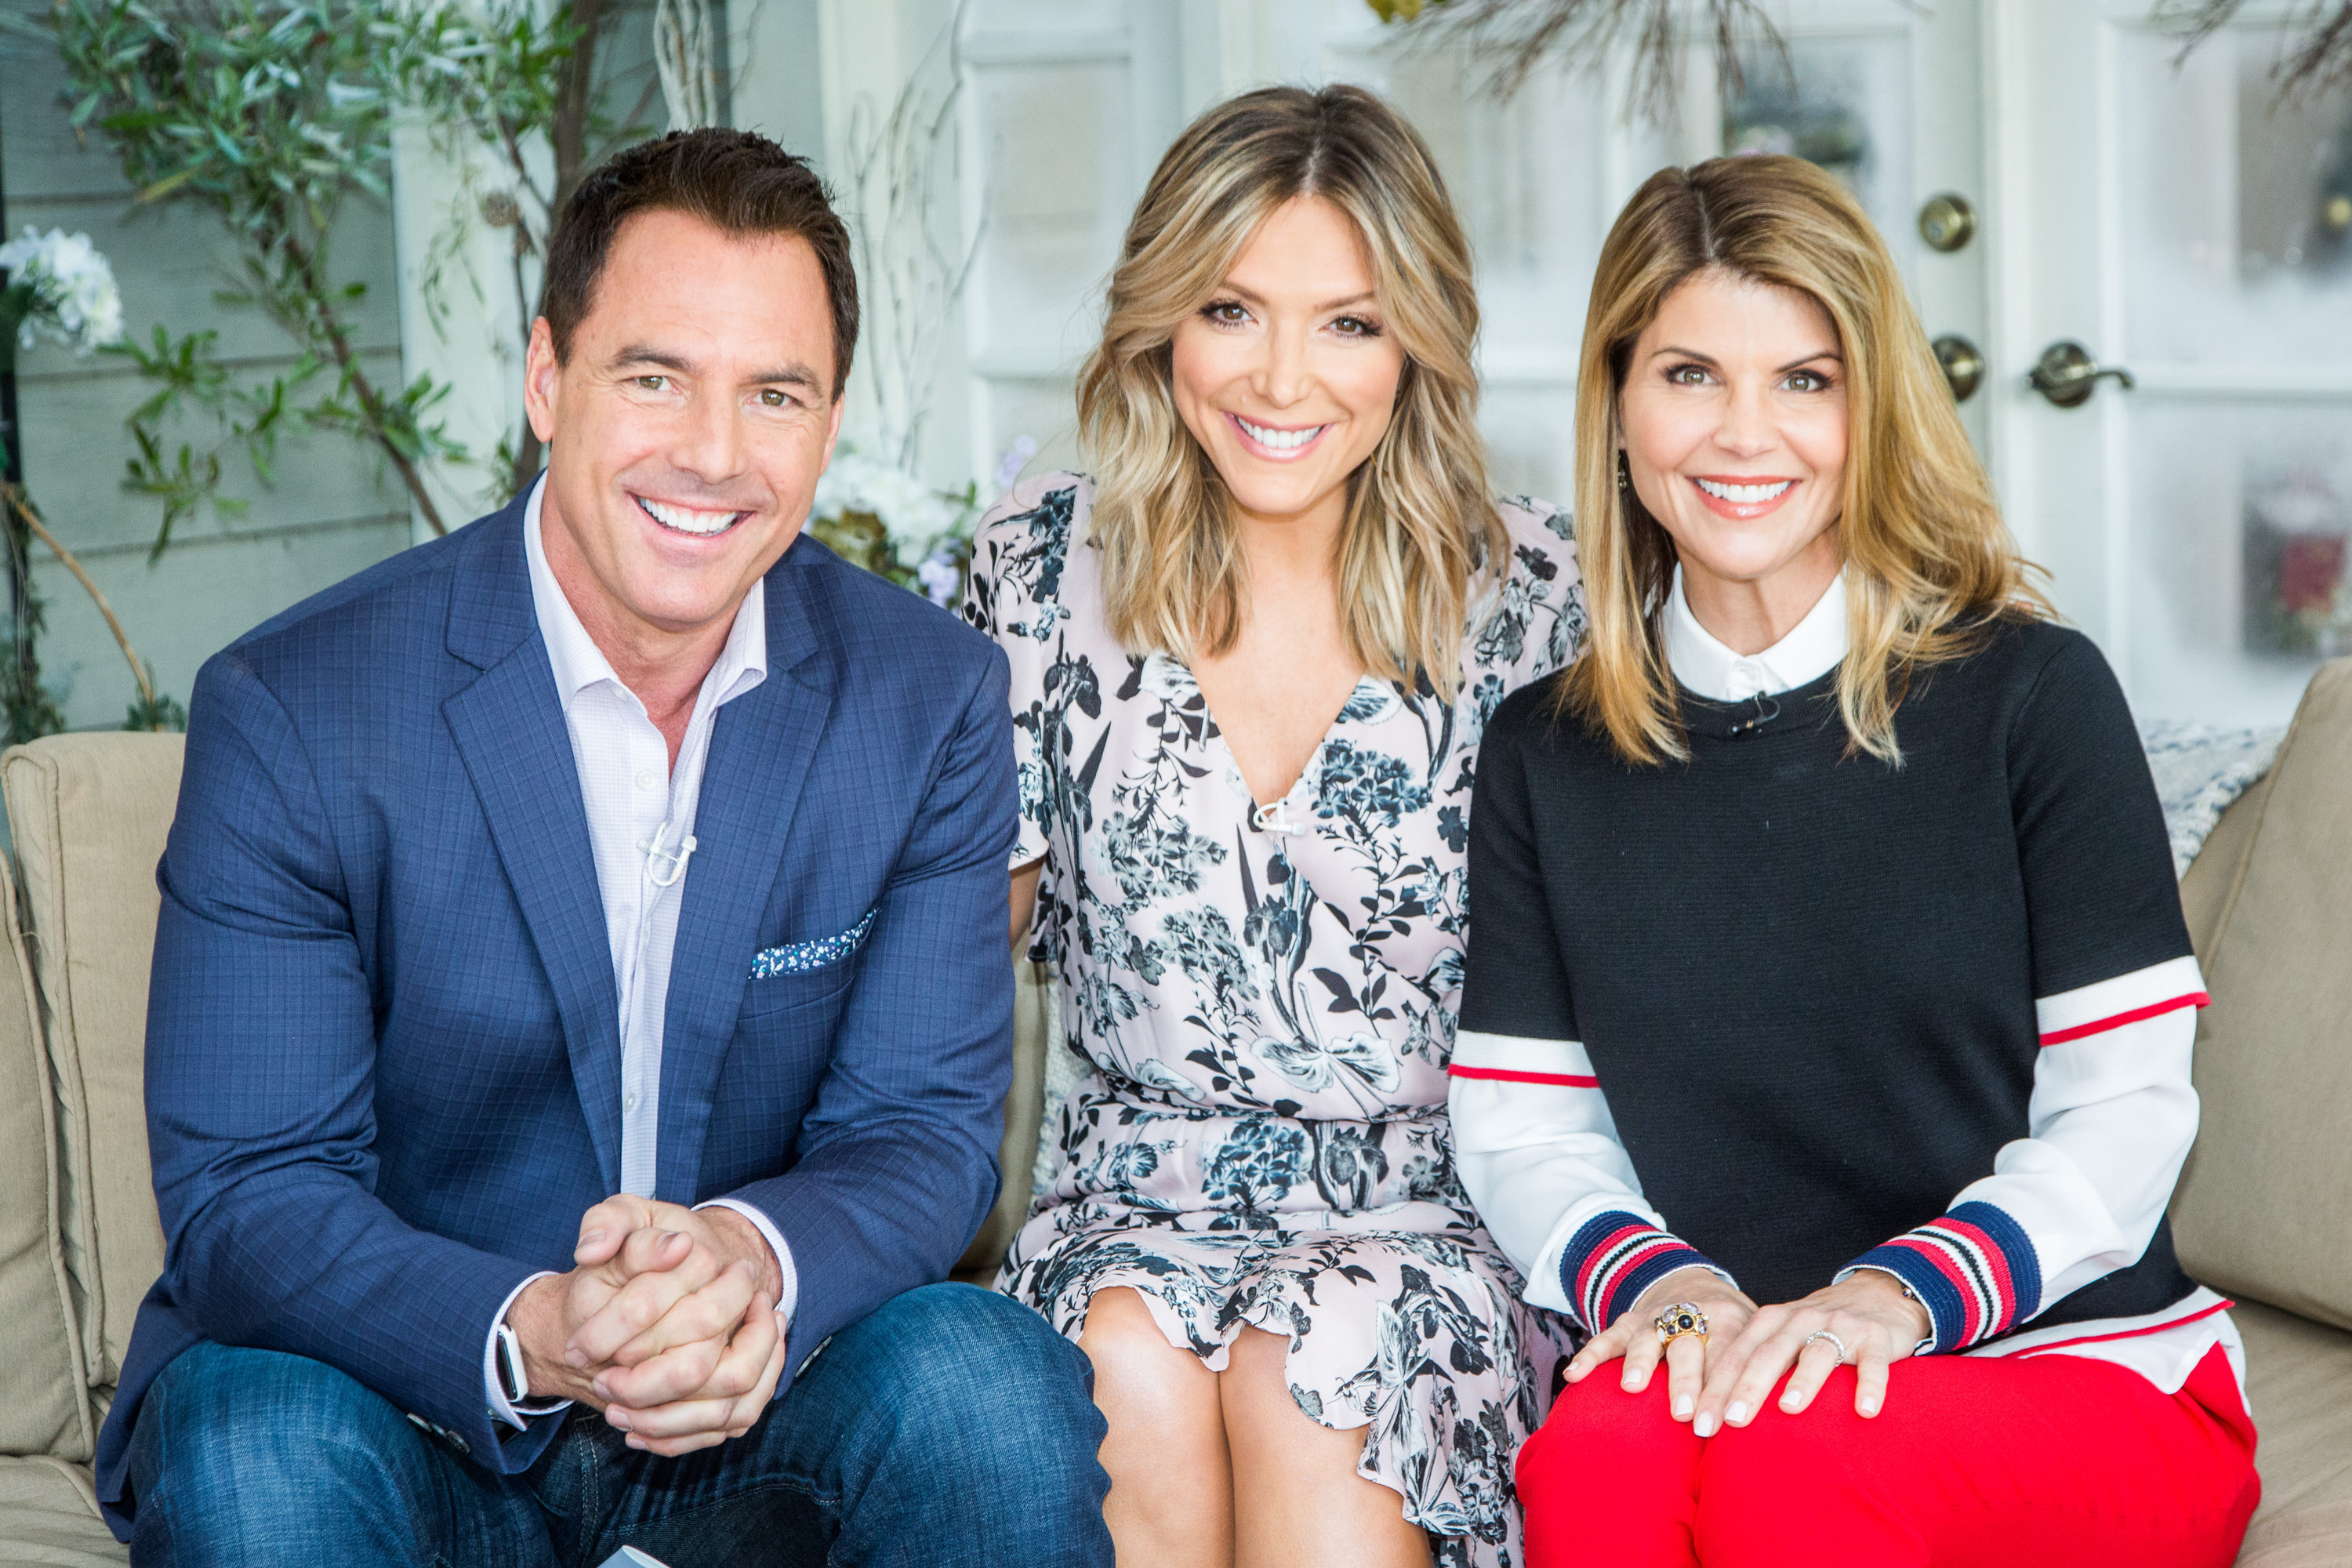 'Competitive' Lori Loughlin & Her Family Are Living 'A ... |Lori Loughlin Family